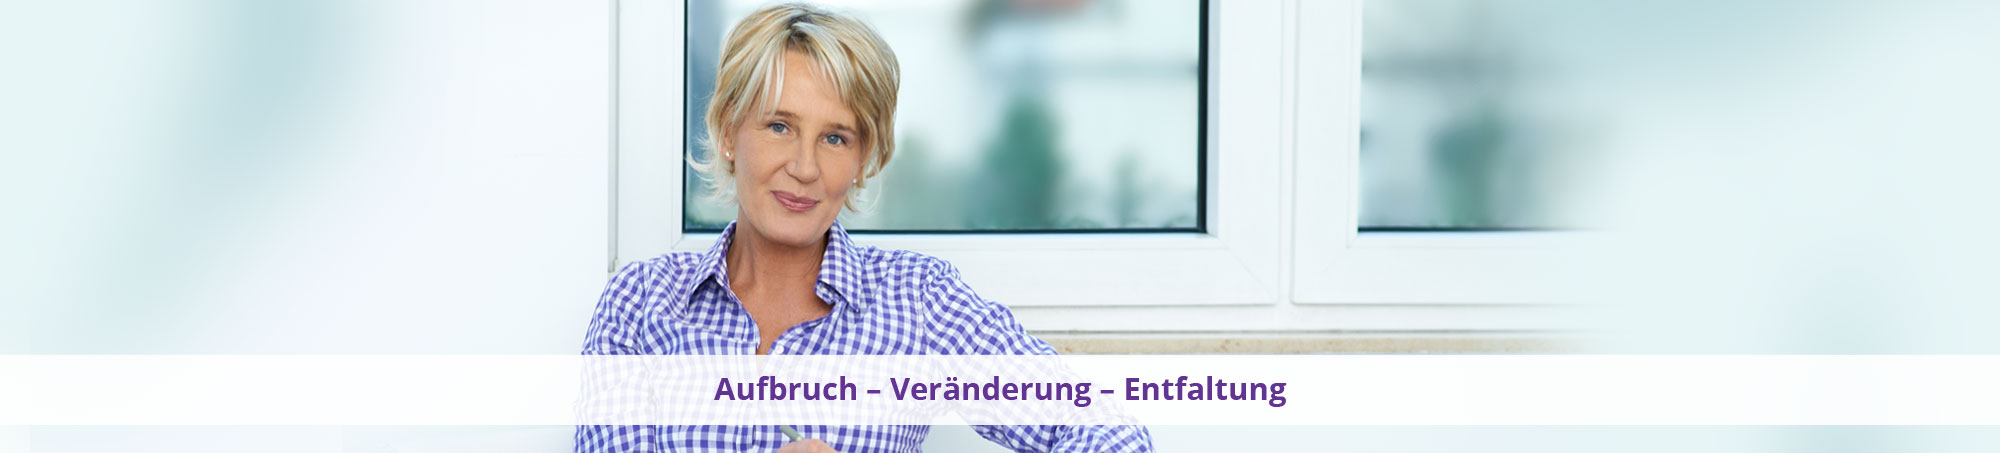 https://ax-coaching-wiesbaden.de/wp-content/uploads/2014/04/slider_ax1.jpg